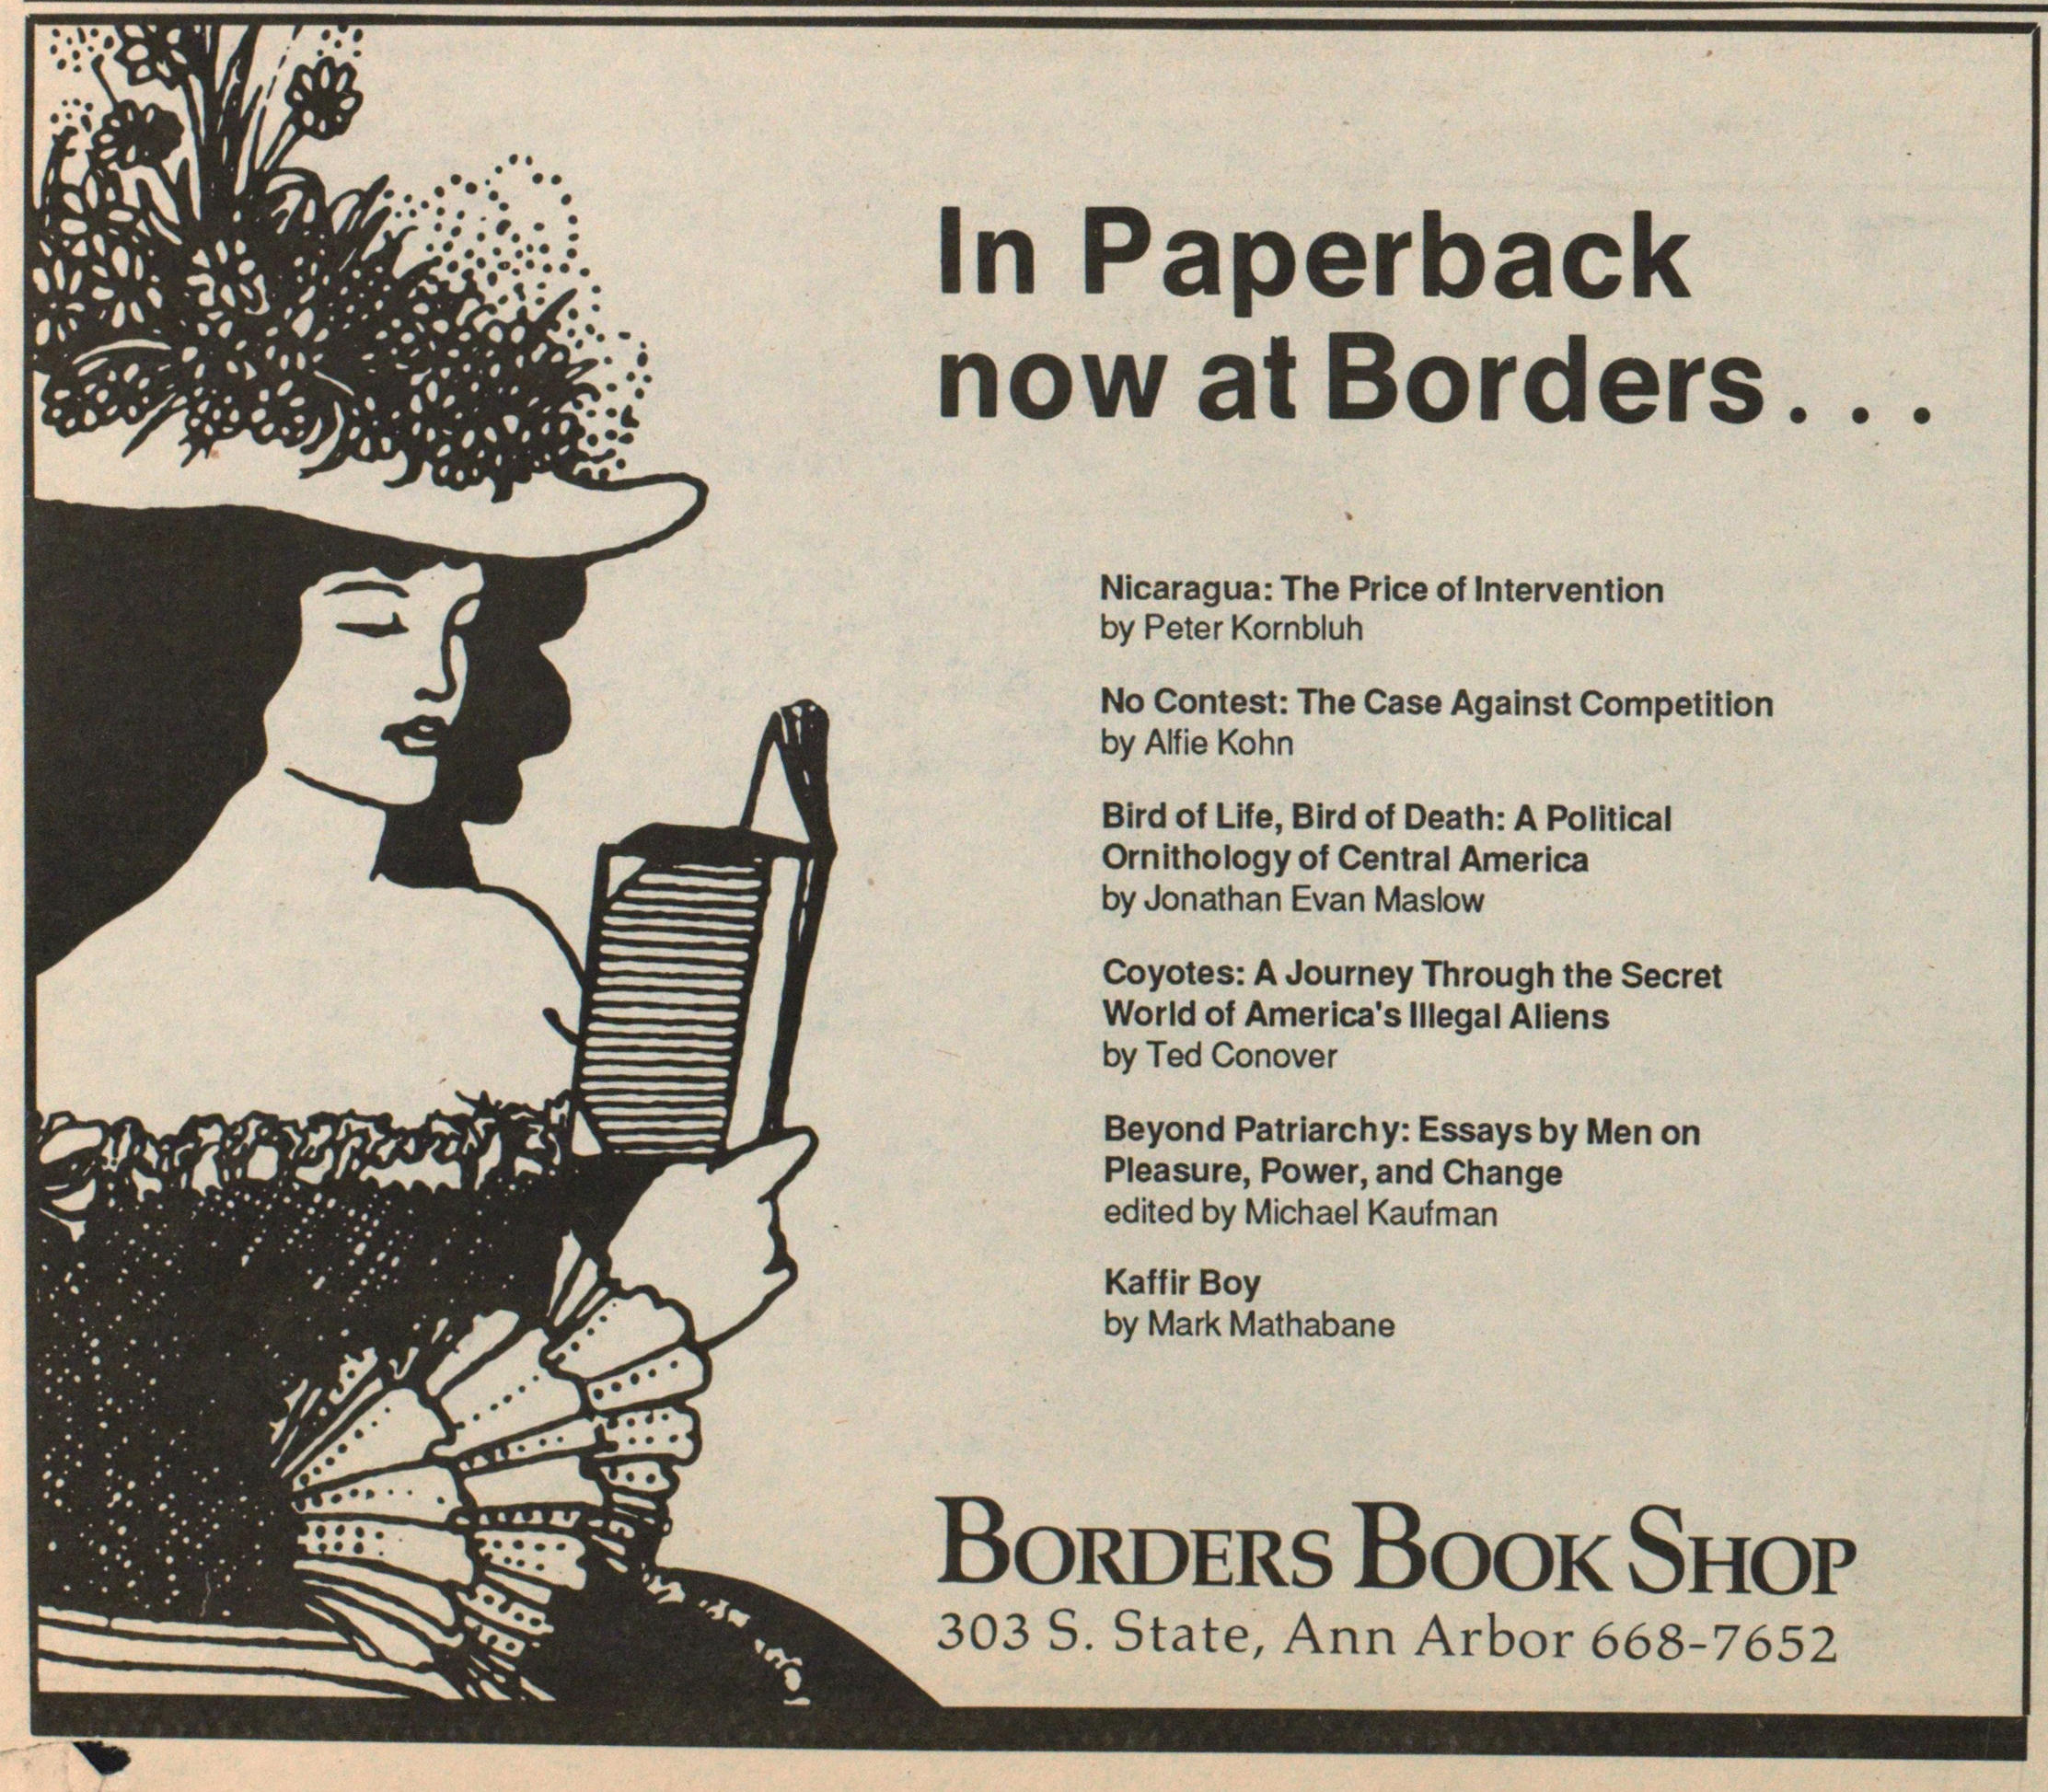 Borders Book Shop image